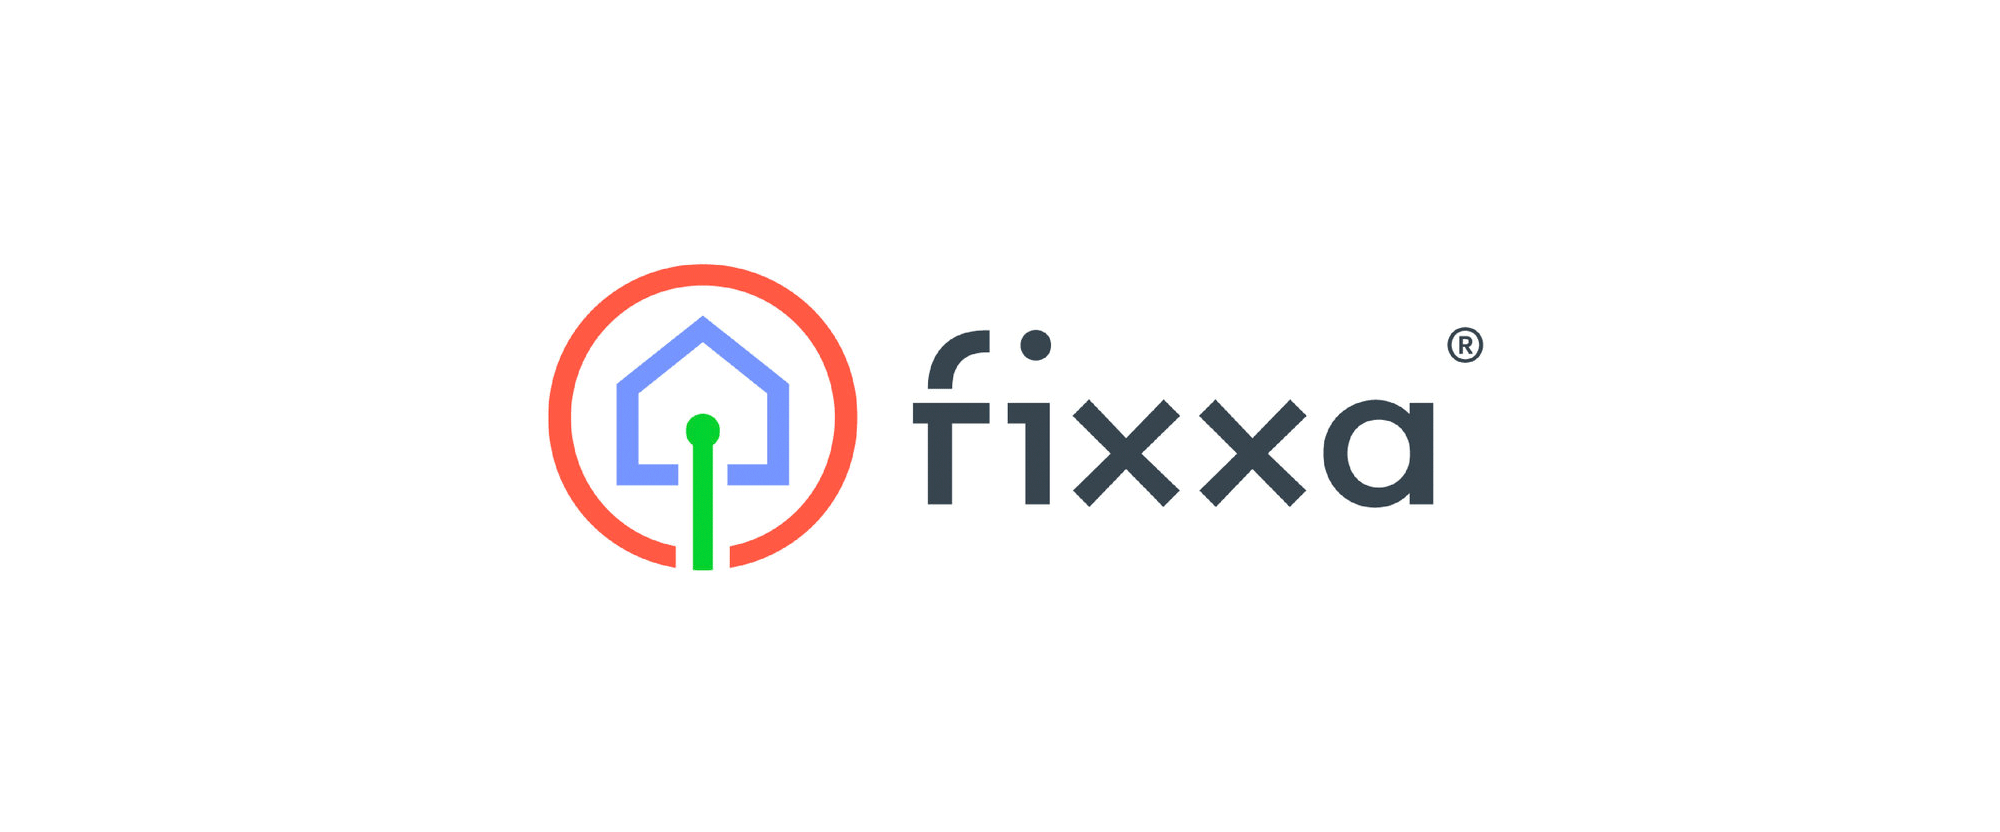 New Logo and Identity for Fixxa by Chromatic Brands